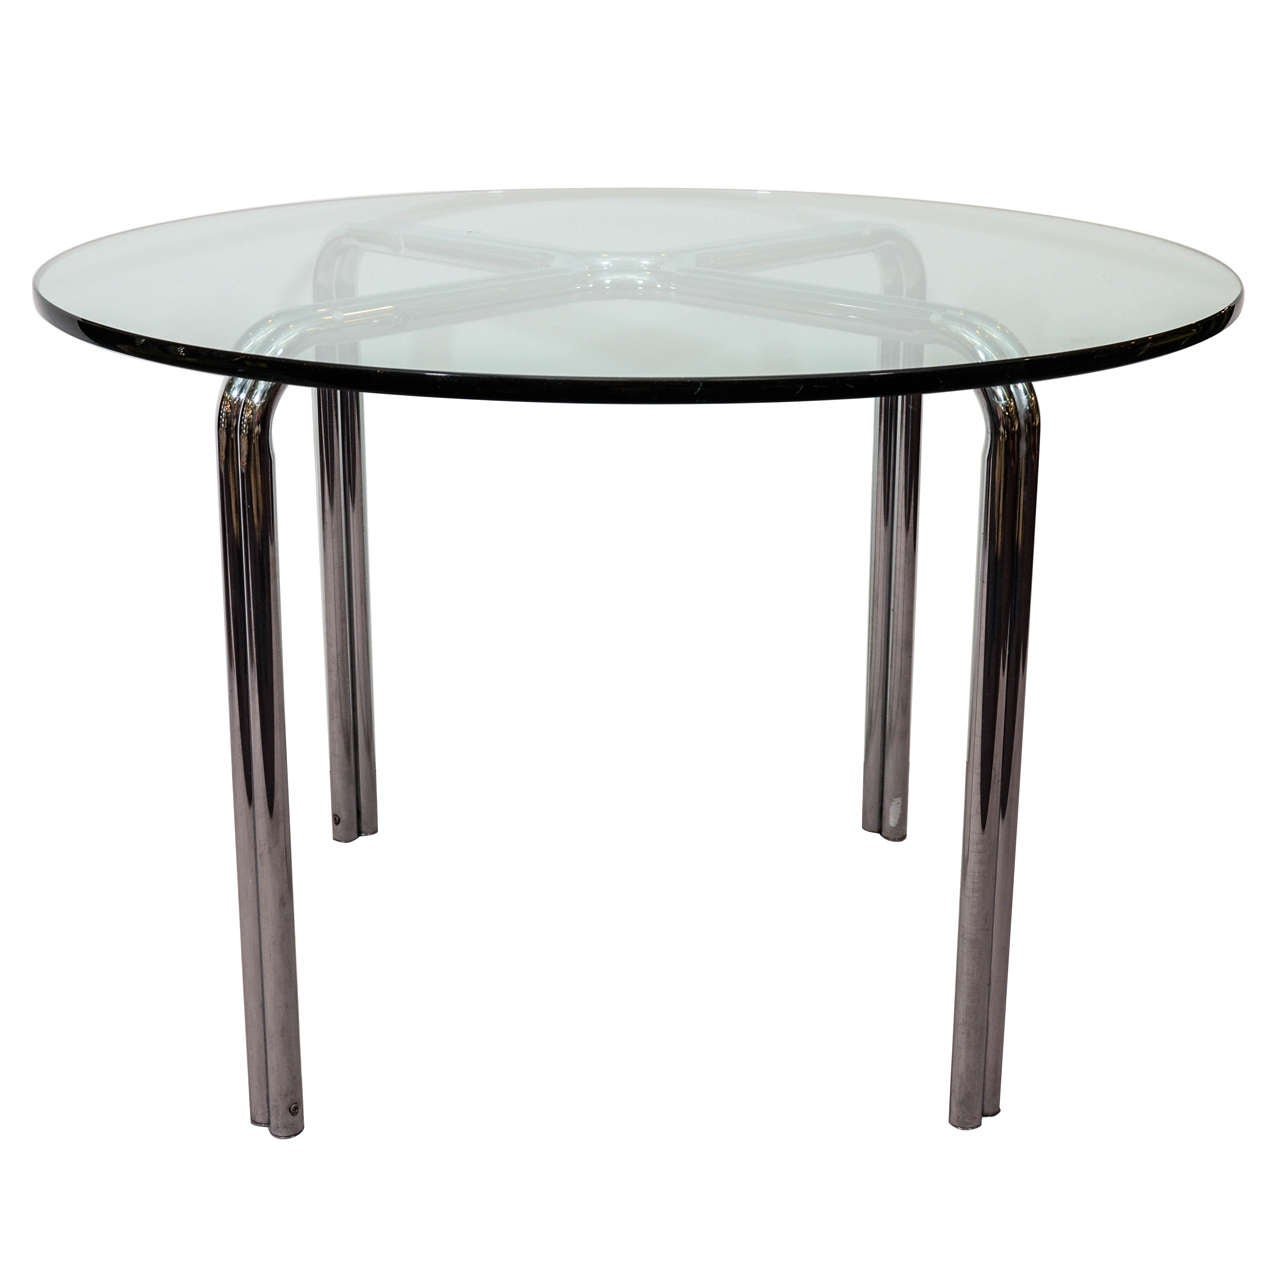 Mid Century Dining Table With Circular Glass Top And Chrome Base At